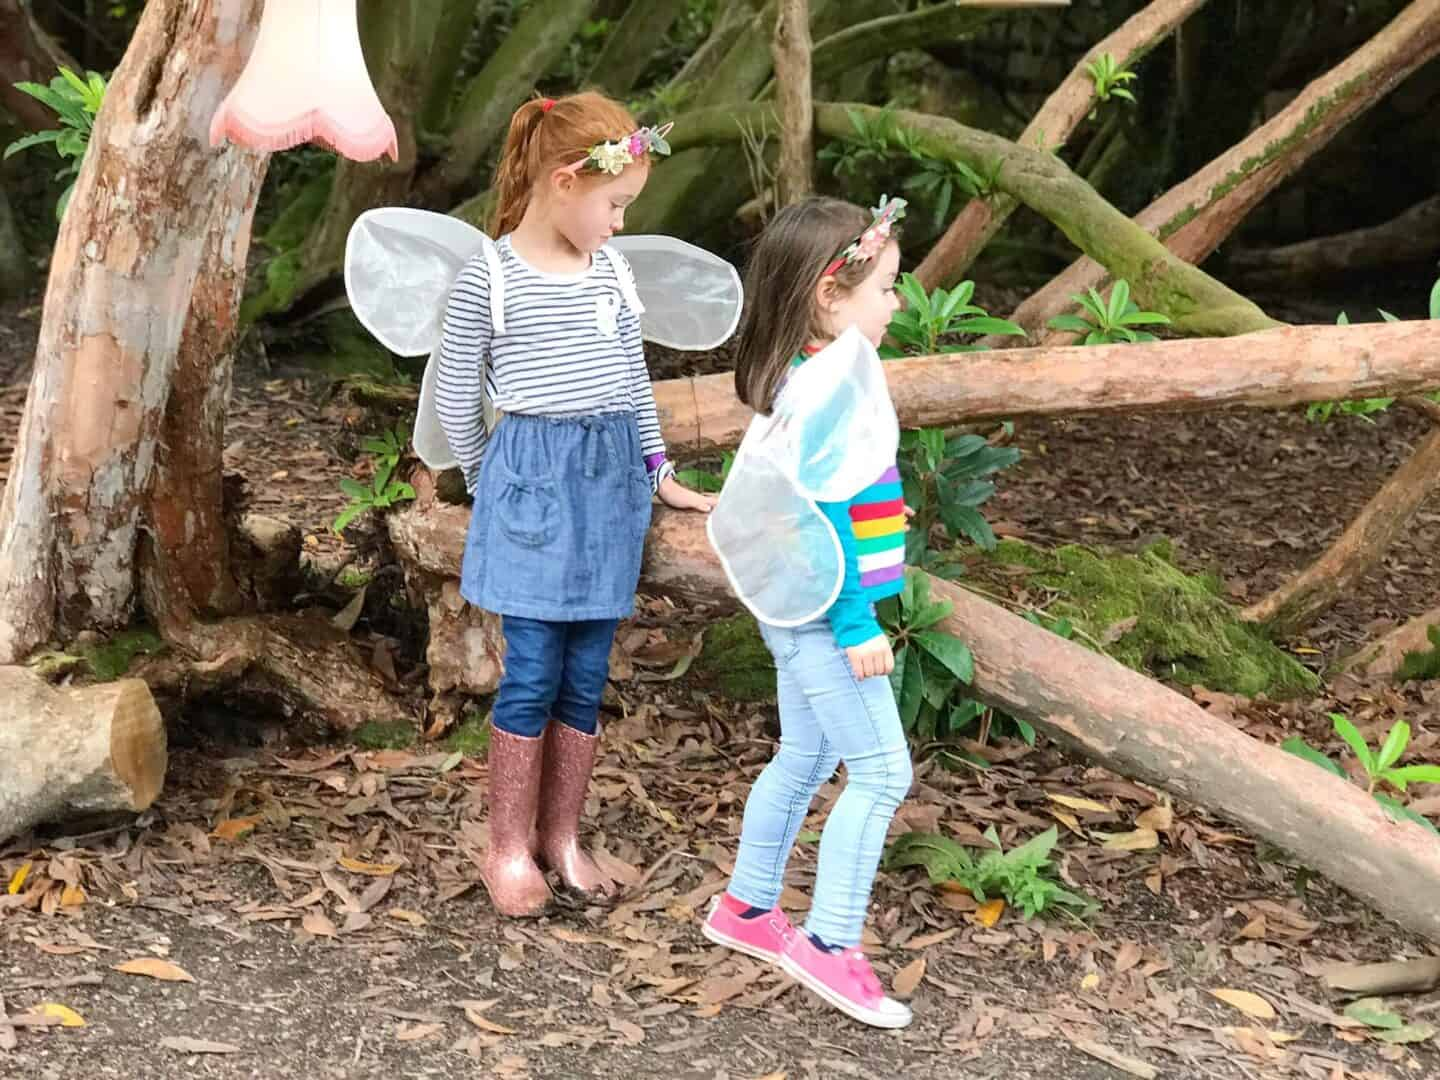 Ava and Thea dressed as fairies at the Lost Gardens of Heligan